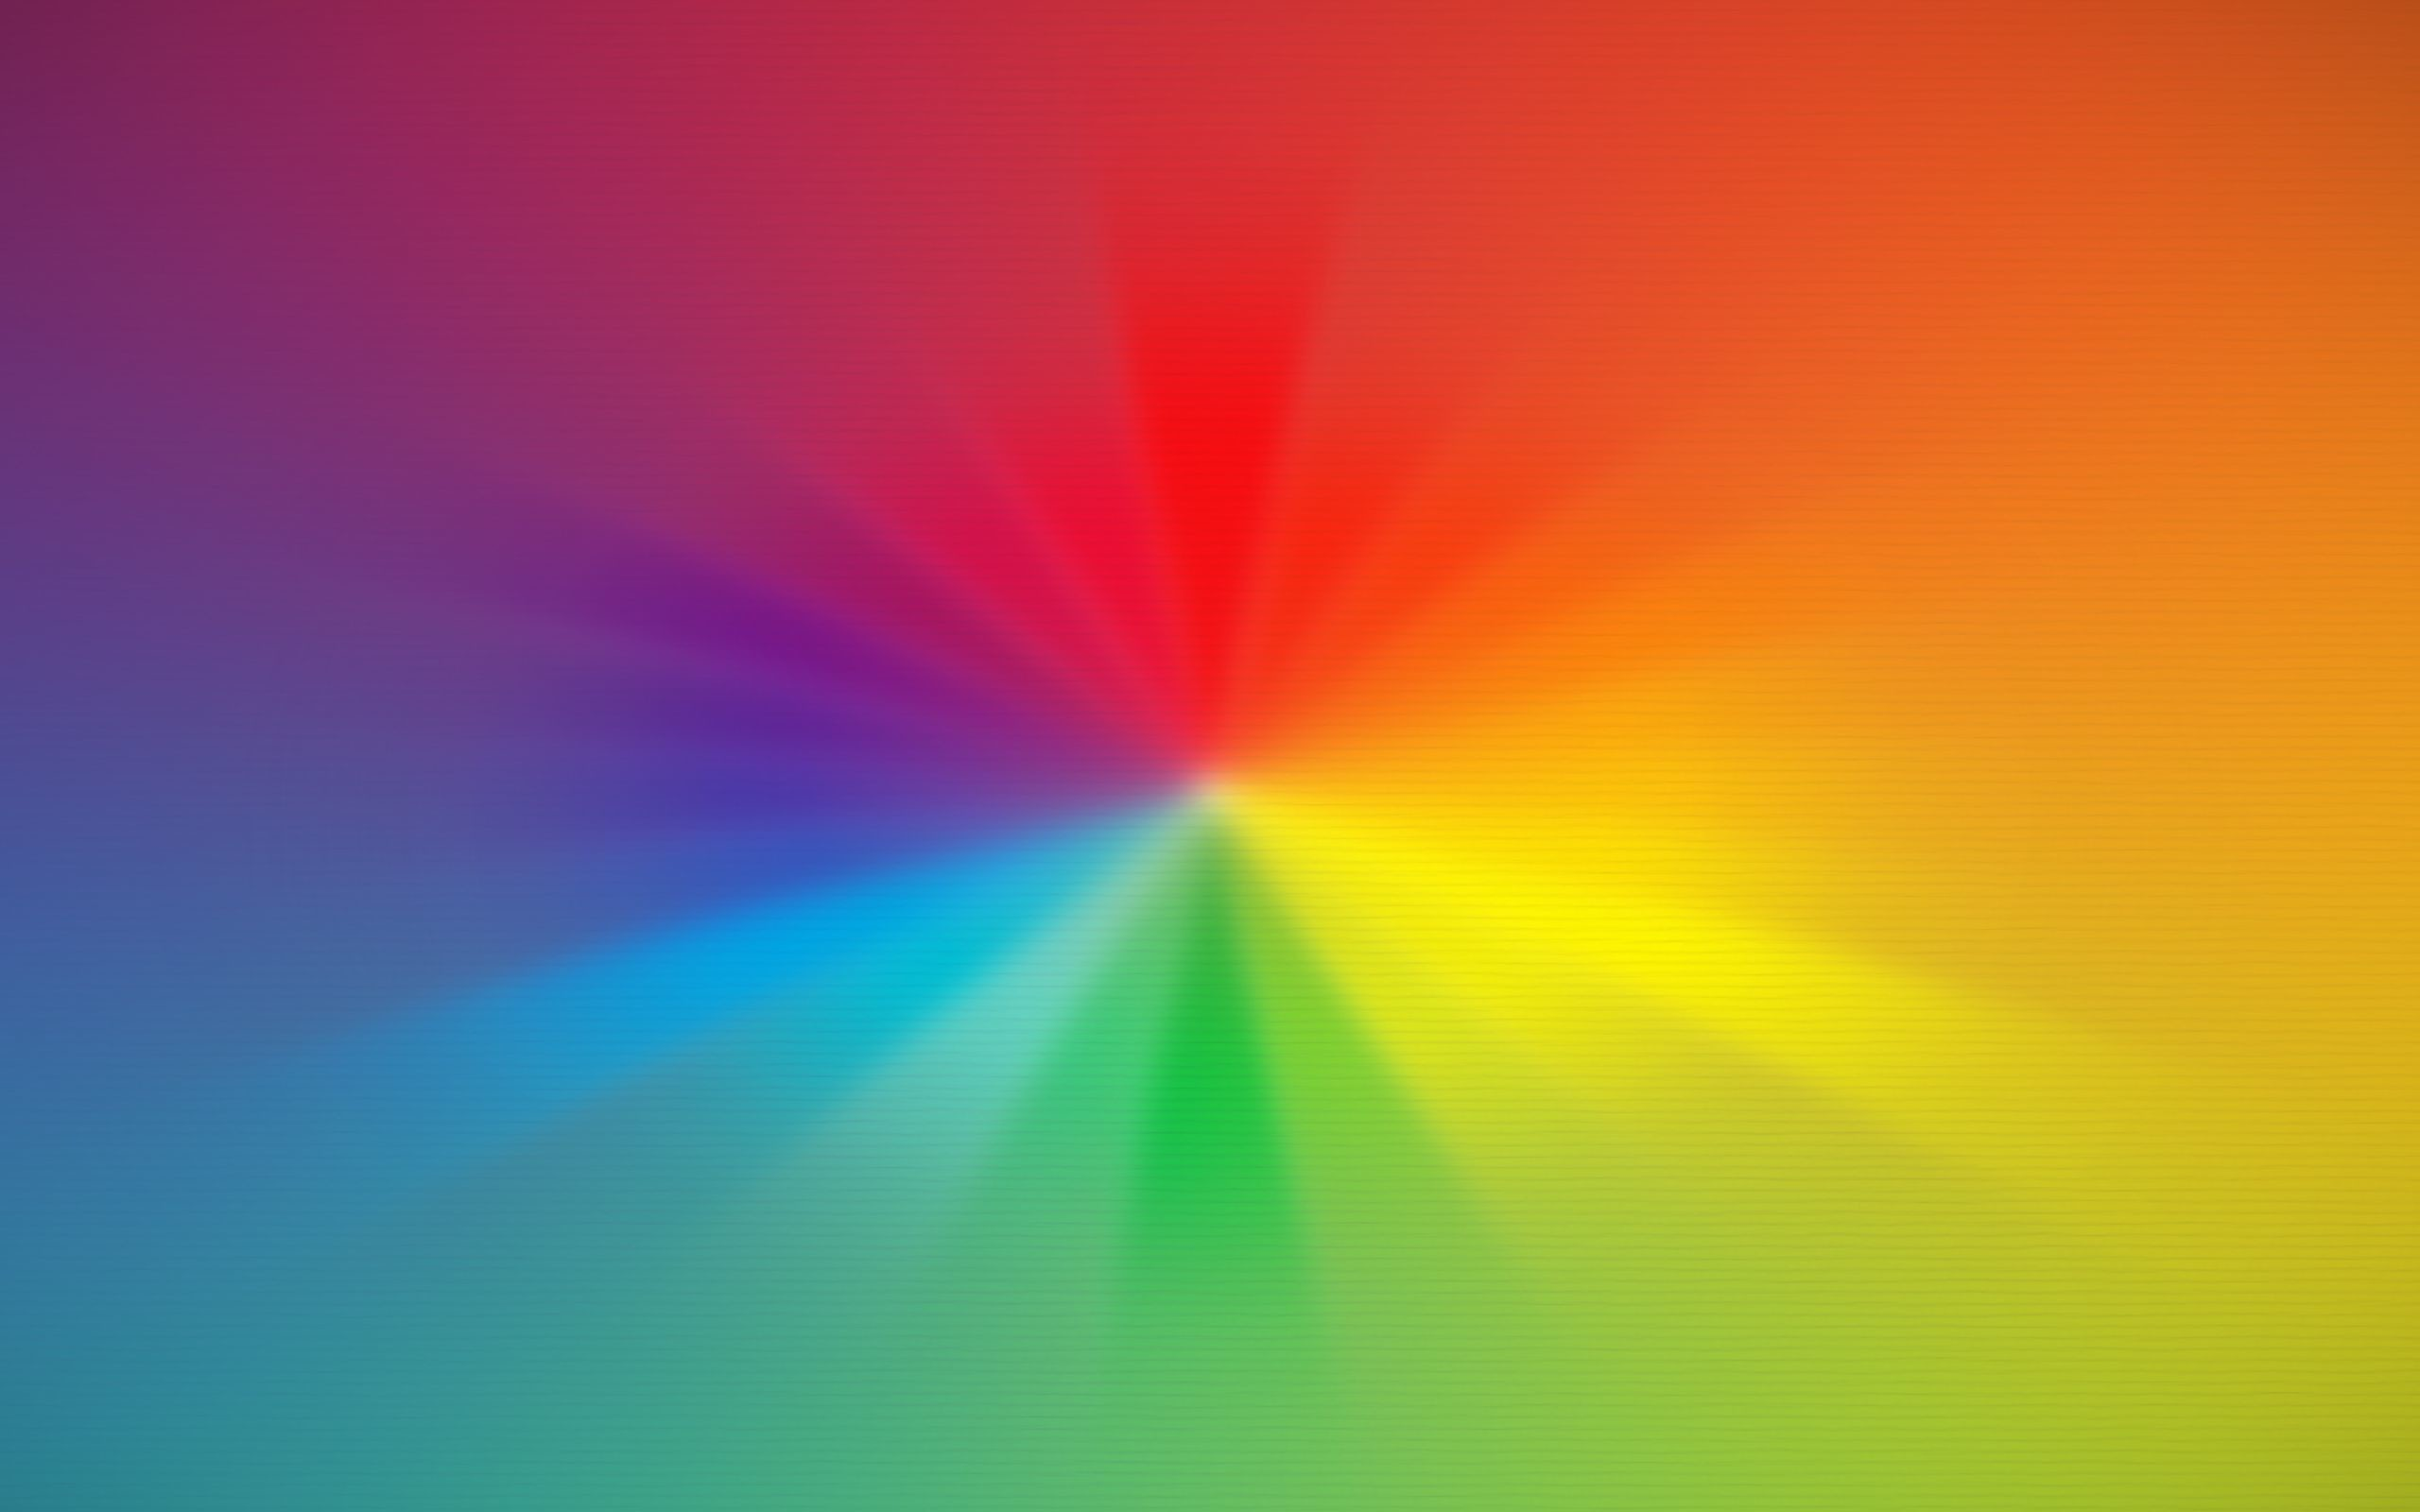 2560x1600 rainbow background - Google Search